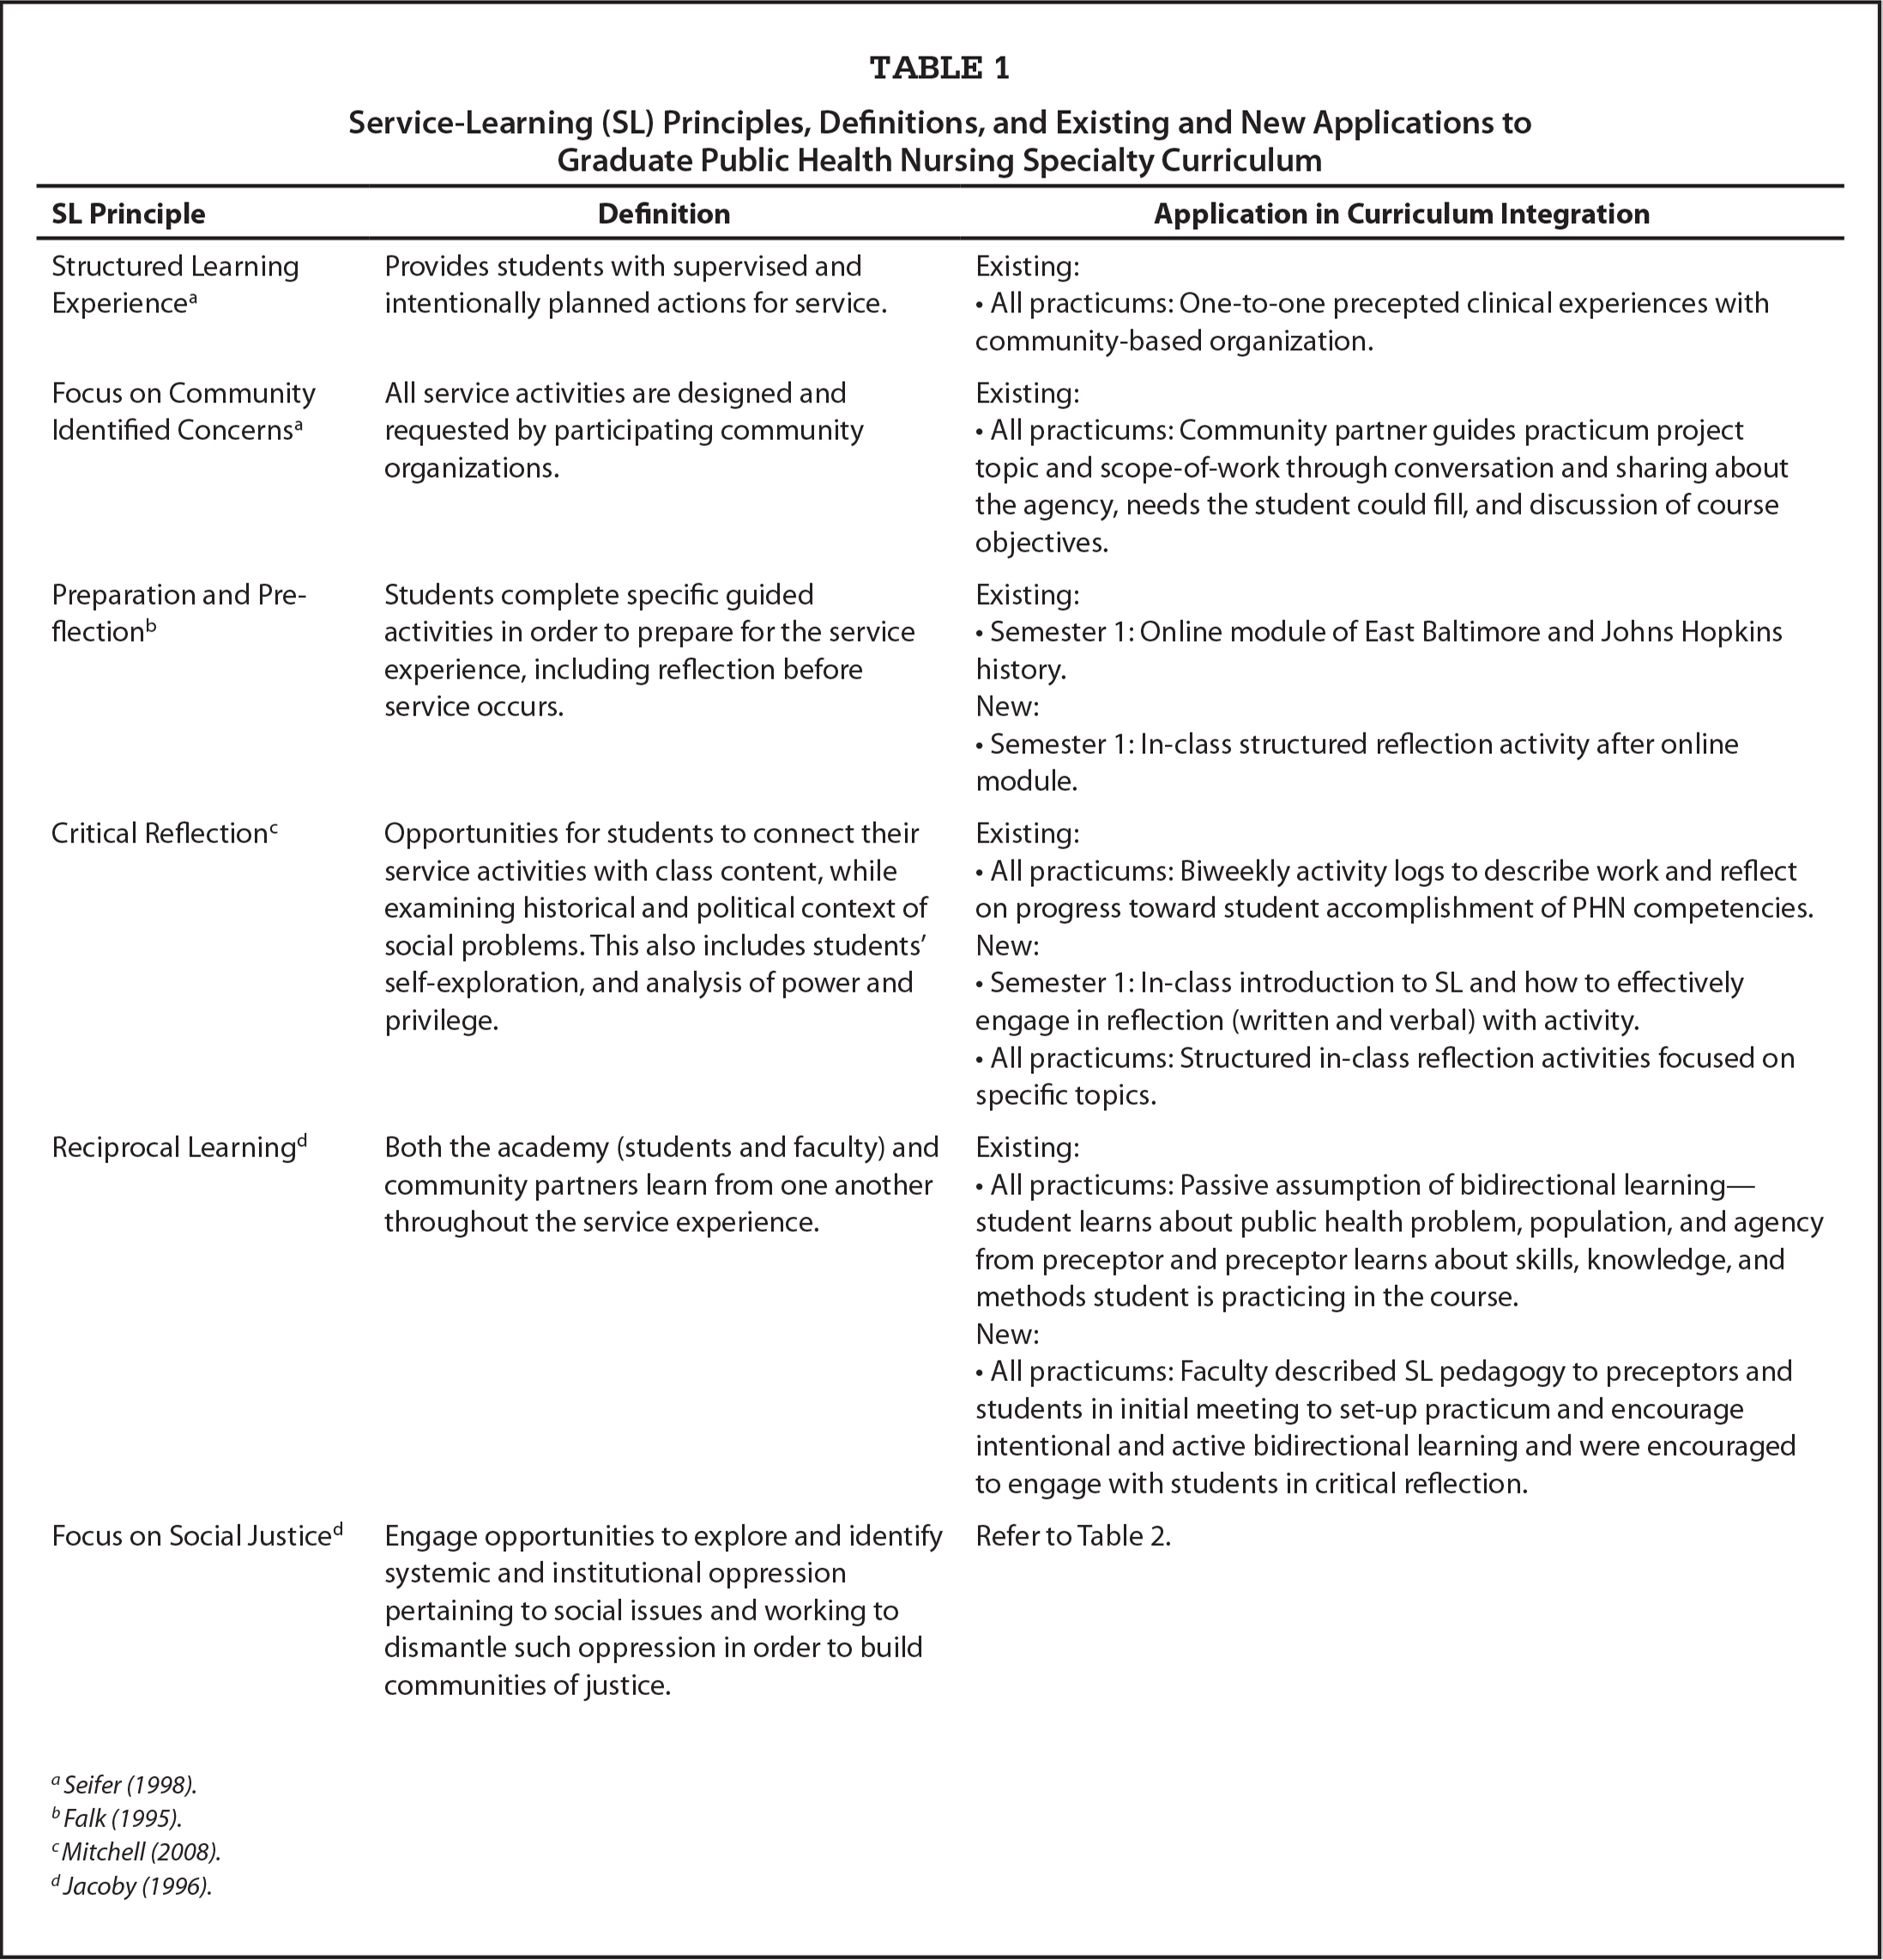 Service-Learning (SL) Principles, Definitions, and Existing and New Applications to Graduate Public Health Nursing Specialty Curriculum